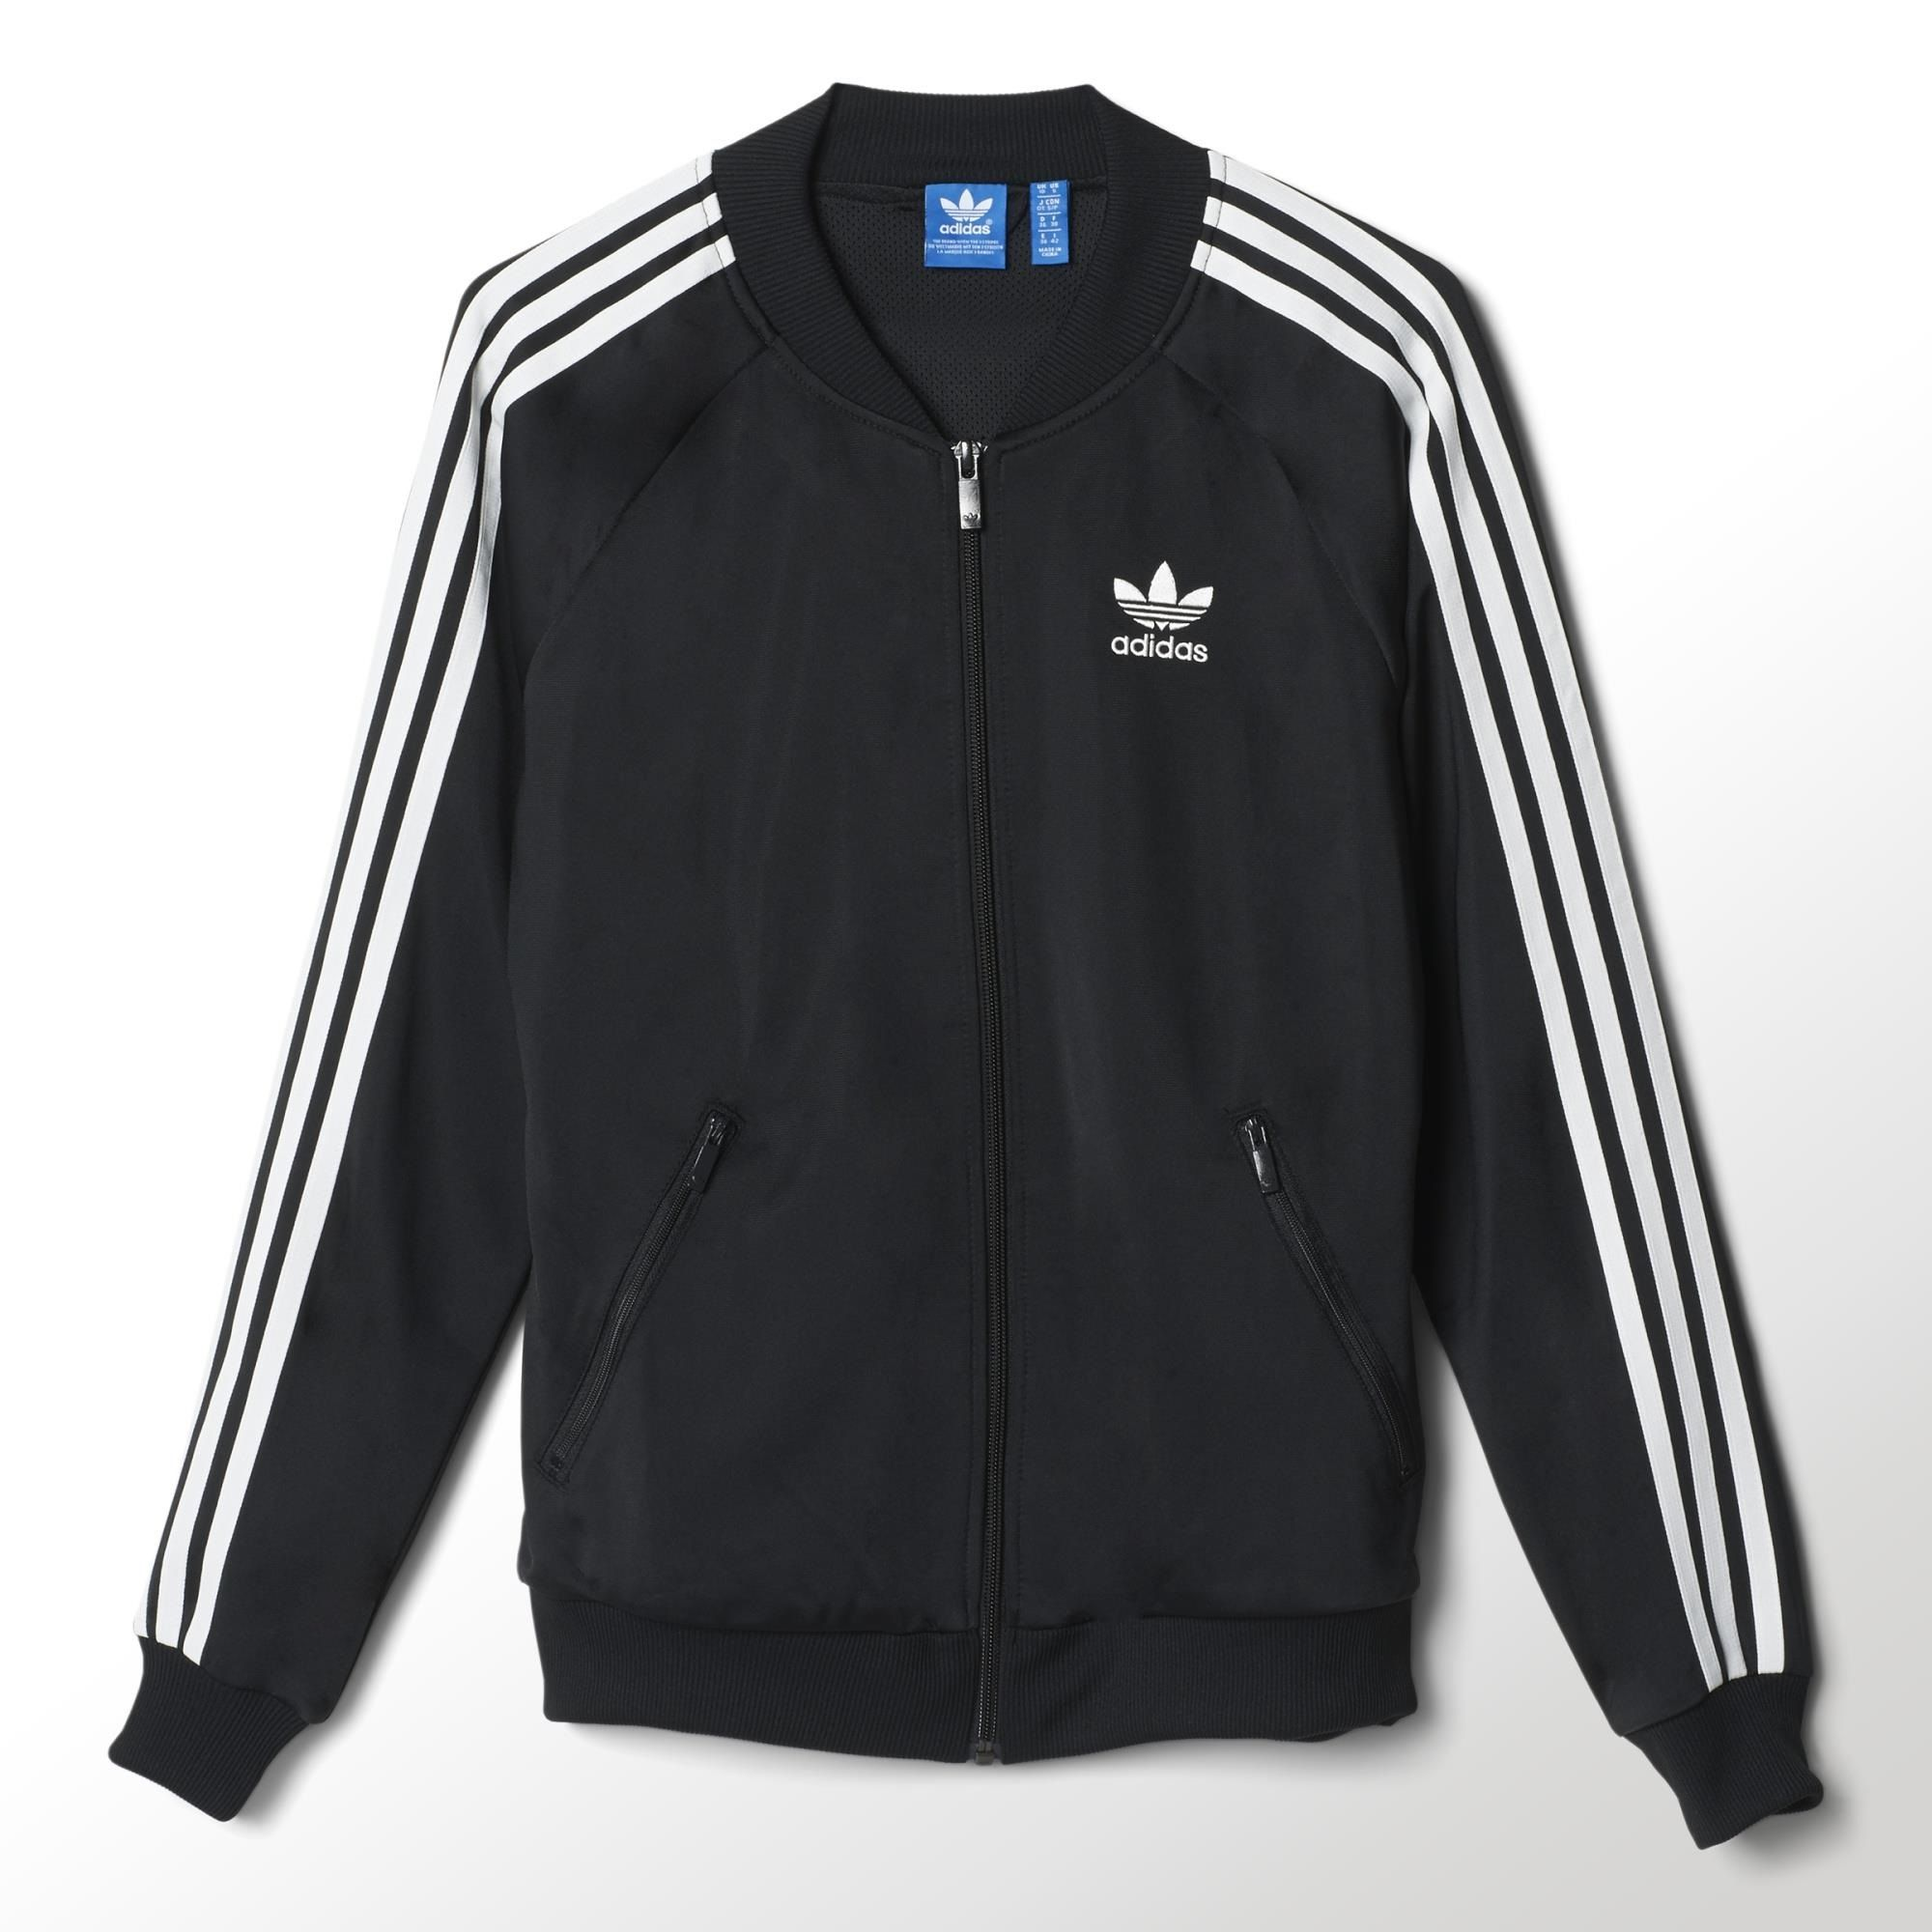 3af7a483d84ec This women s Superstar Track Top is a one-to-one reissue of one of adidas   most iconic styles. The track jacket comes in shiny tricot with all the  authentic ...